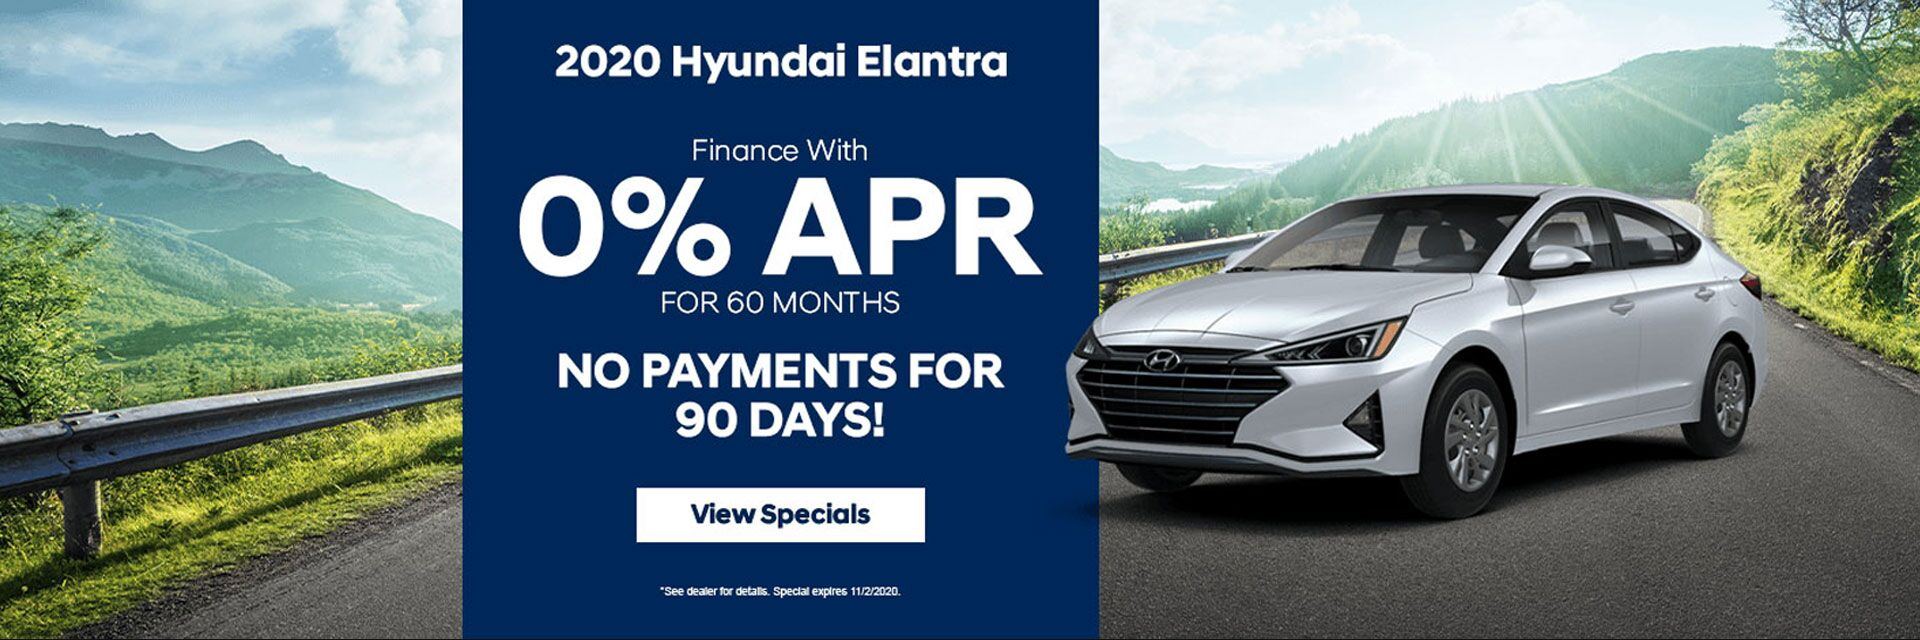 2020 Hyundai Elantra Finance